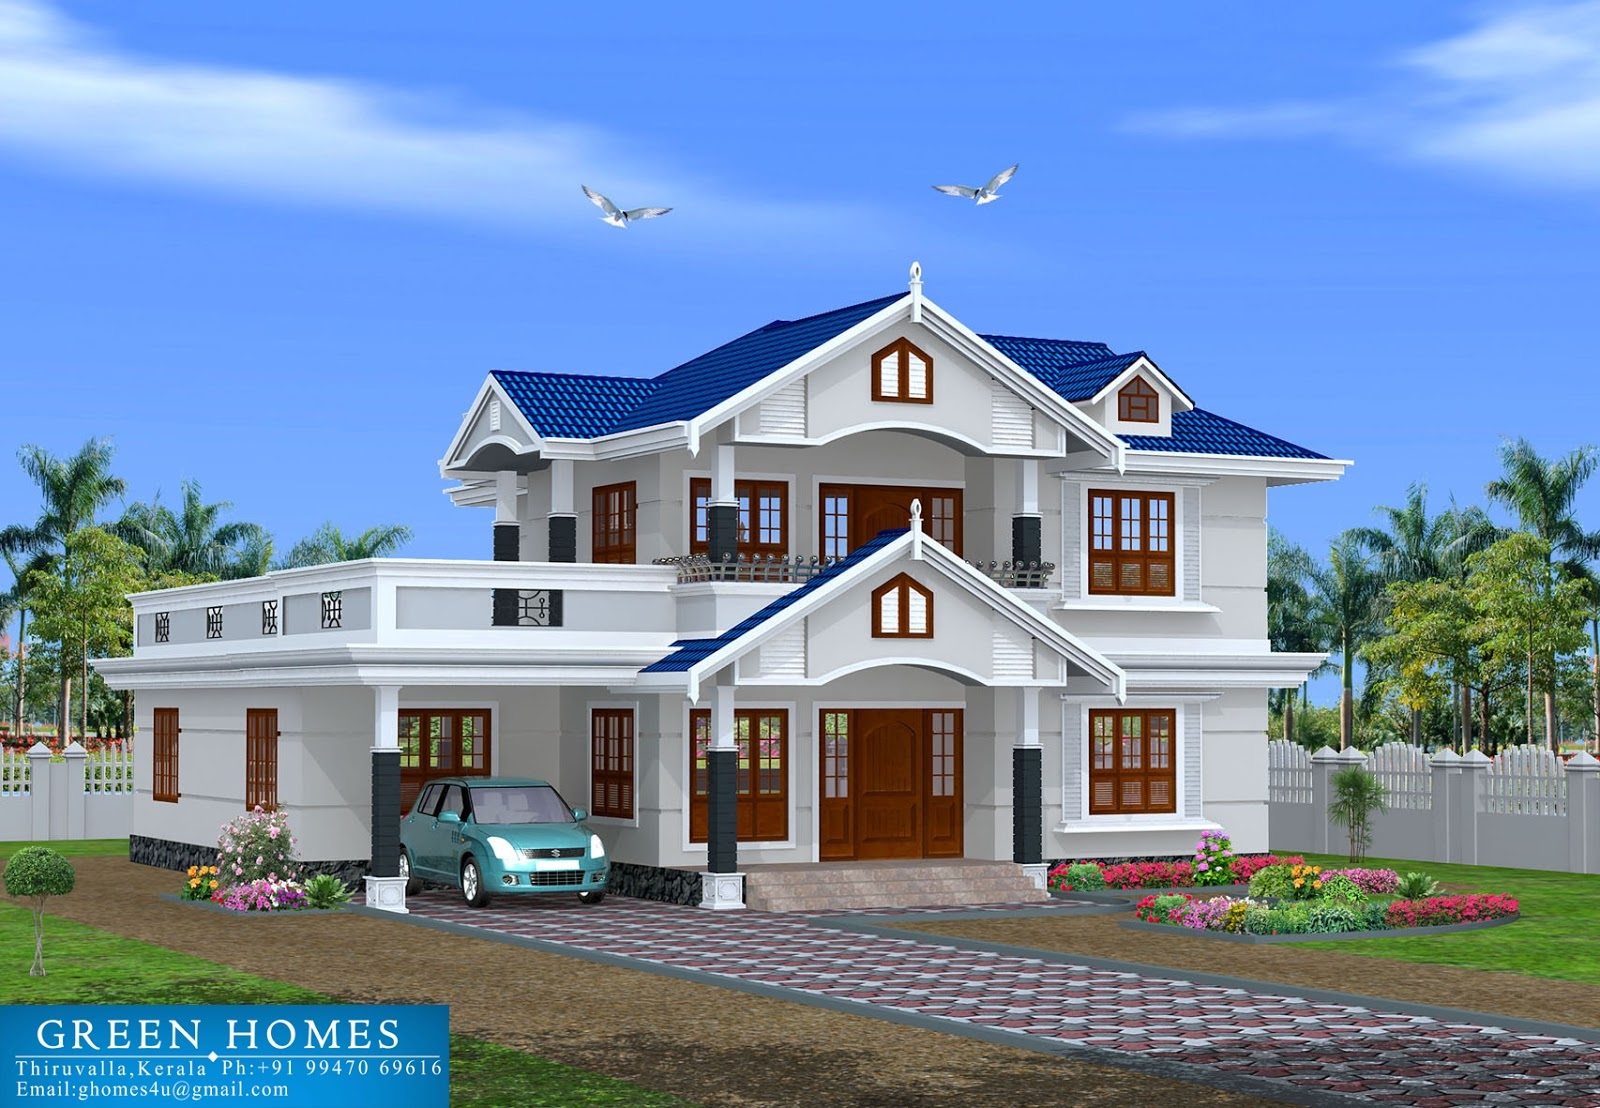 Green homes november 2012 for Kerala homes plan